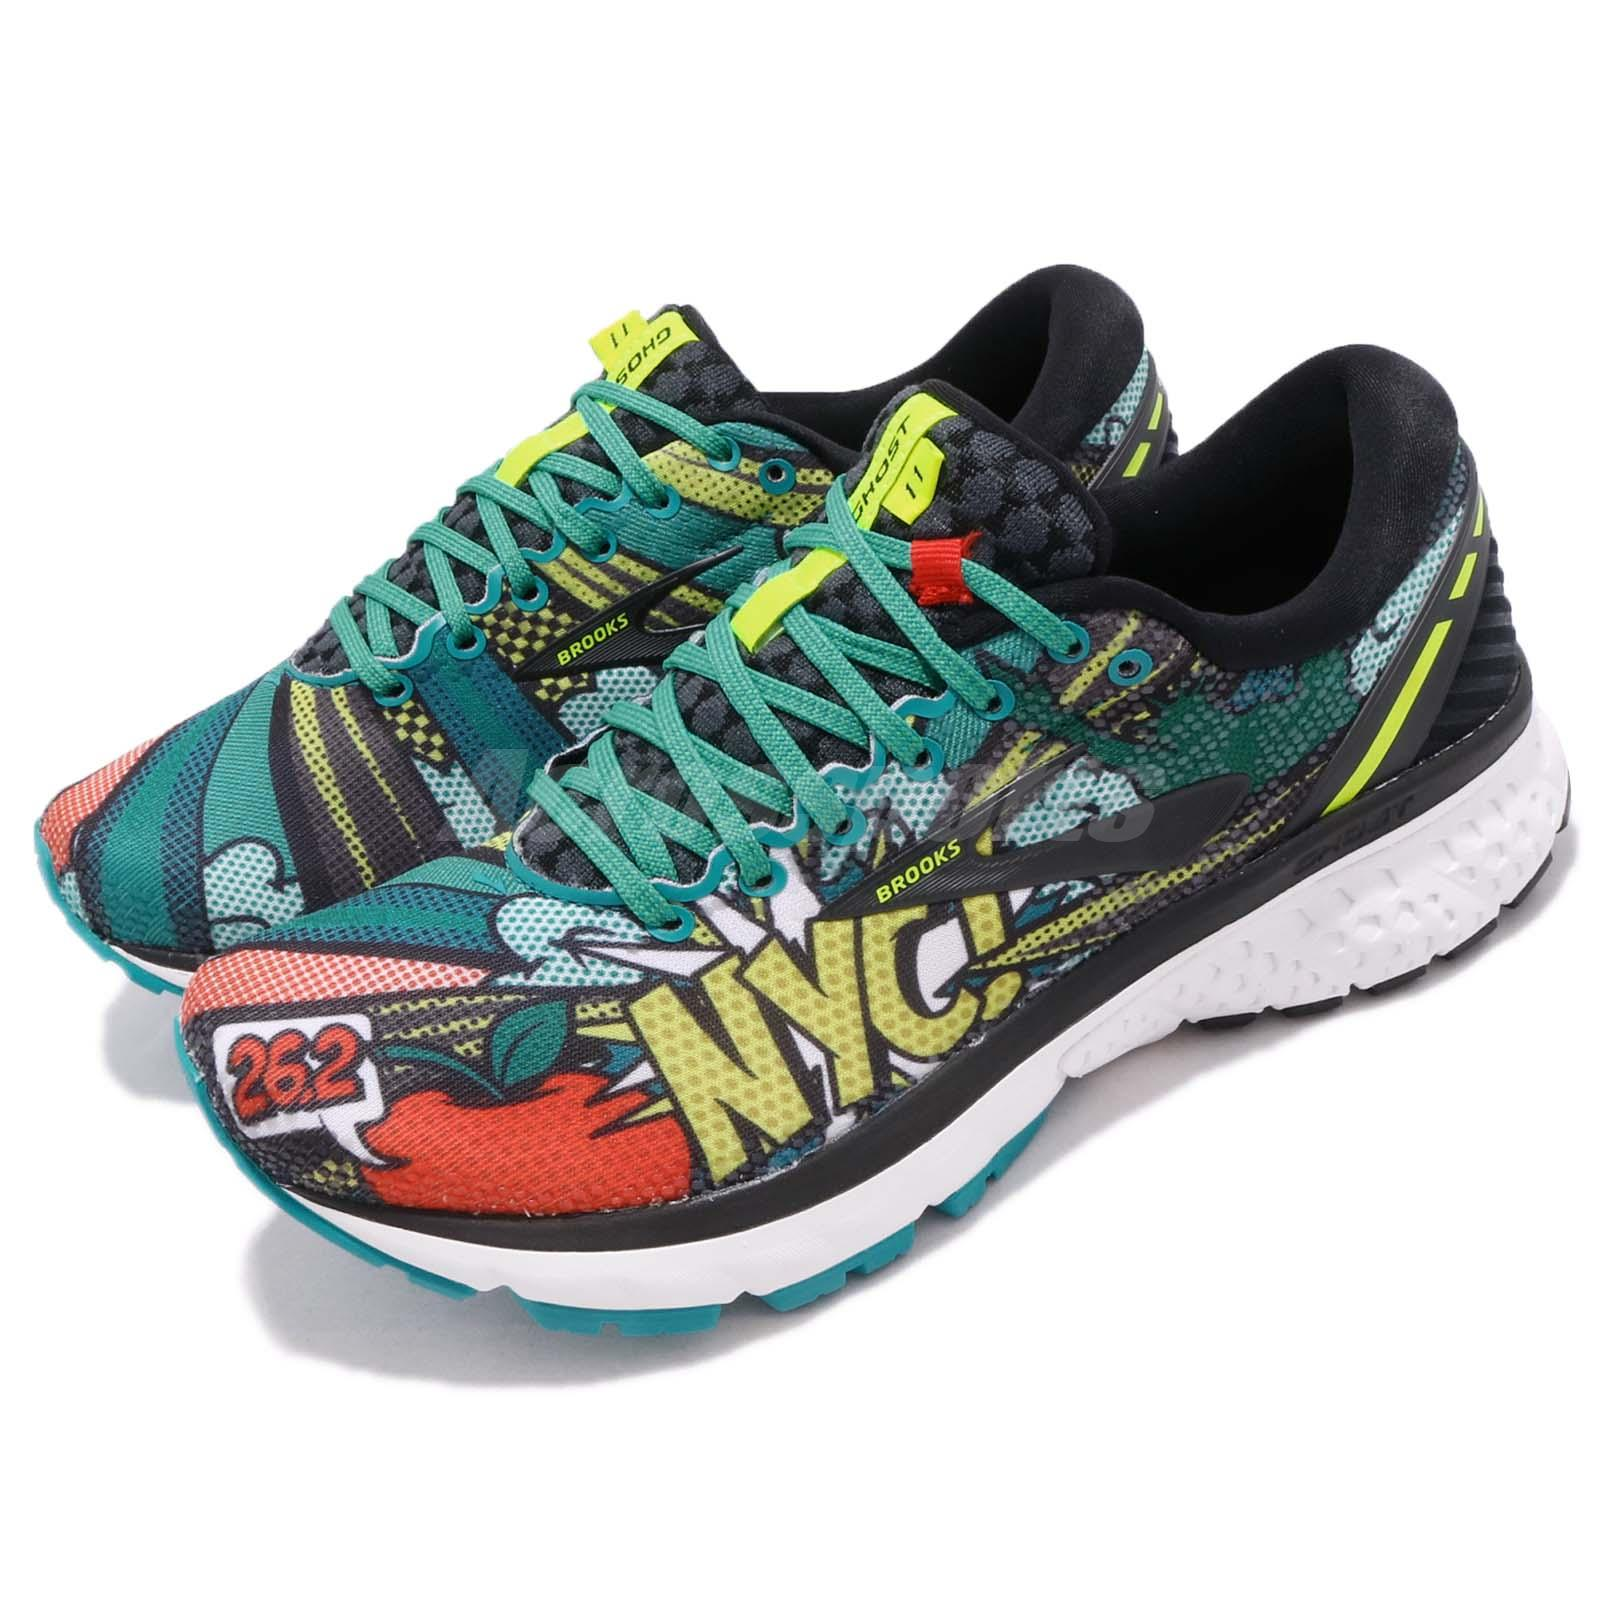 1d599b4d8bd Details about Brooks Ghost 11 New York Marathon Black Pop Art Women Running  Shoes 120277 1B